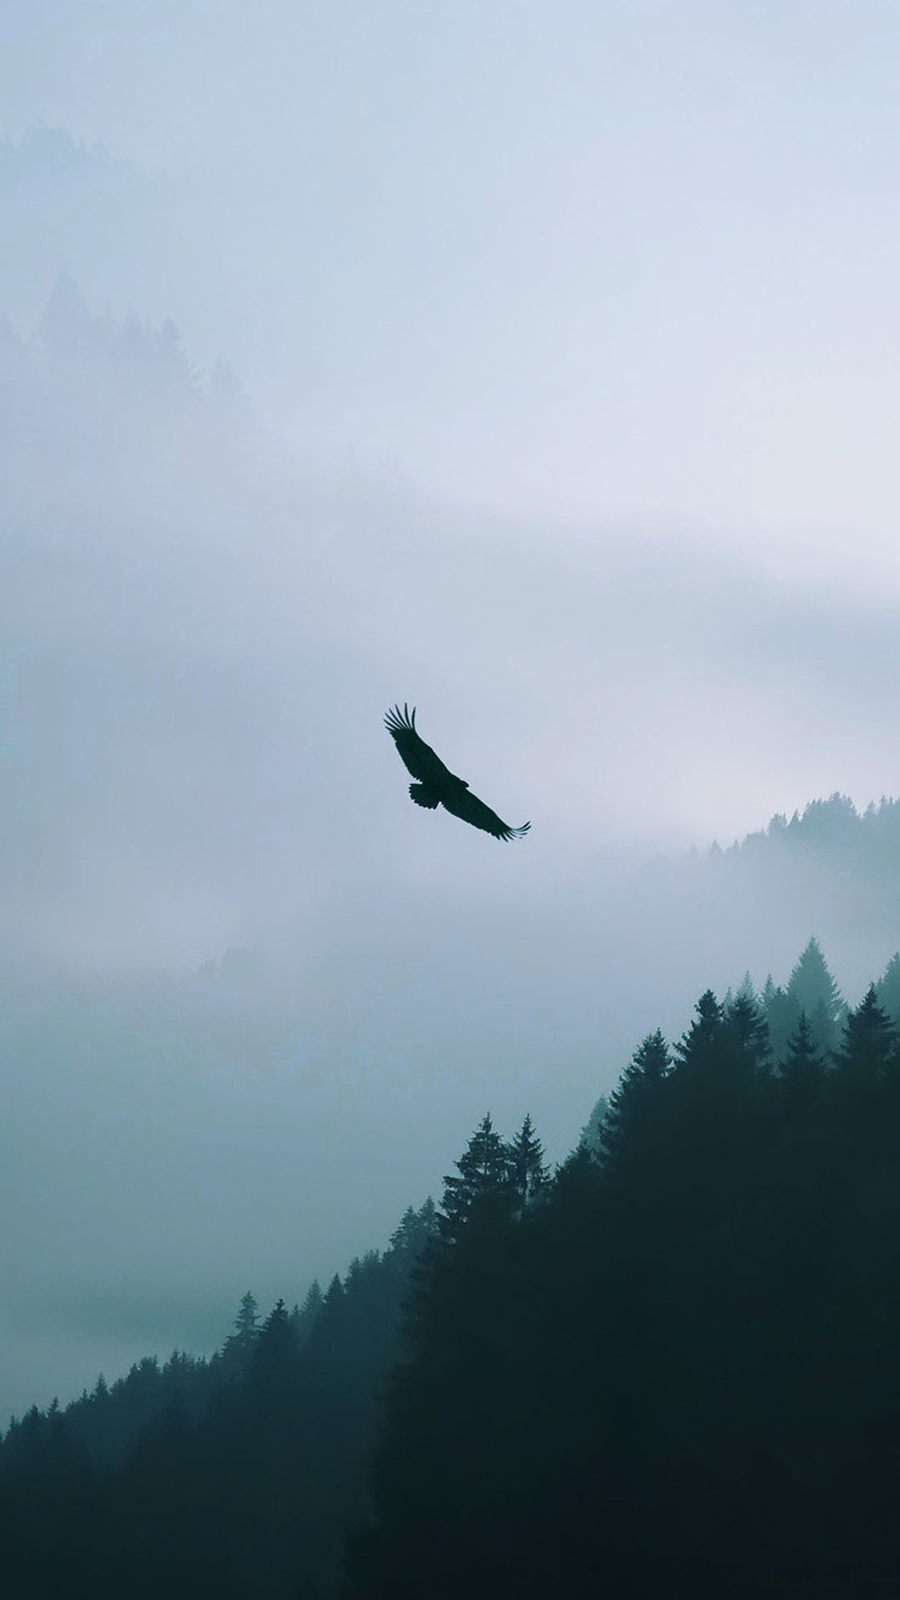 Eagle Flying Over Misty Forest Best Wallpapers Free Download